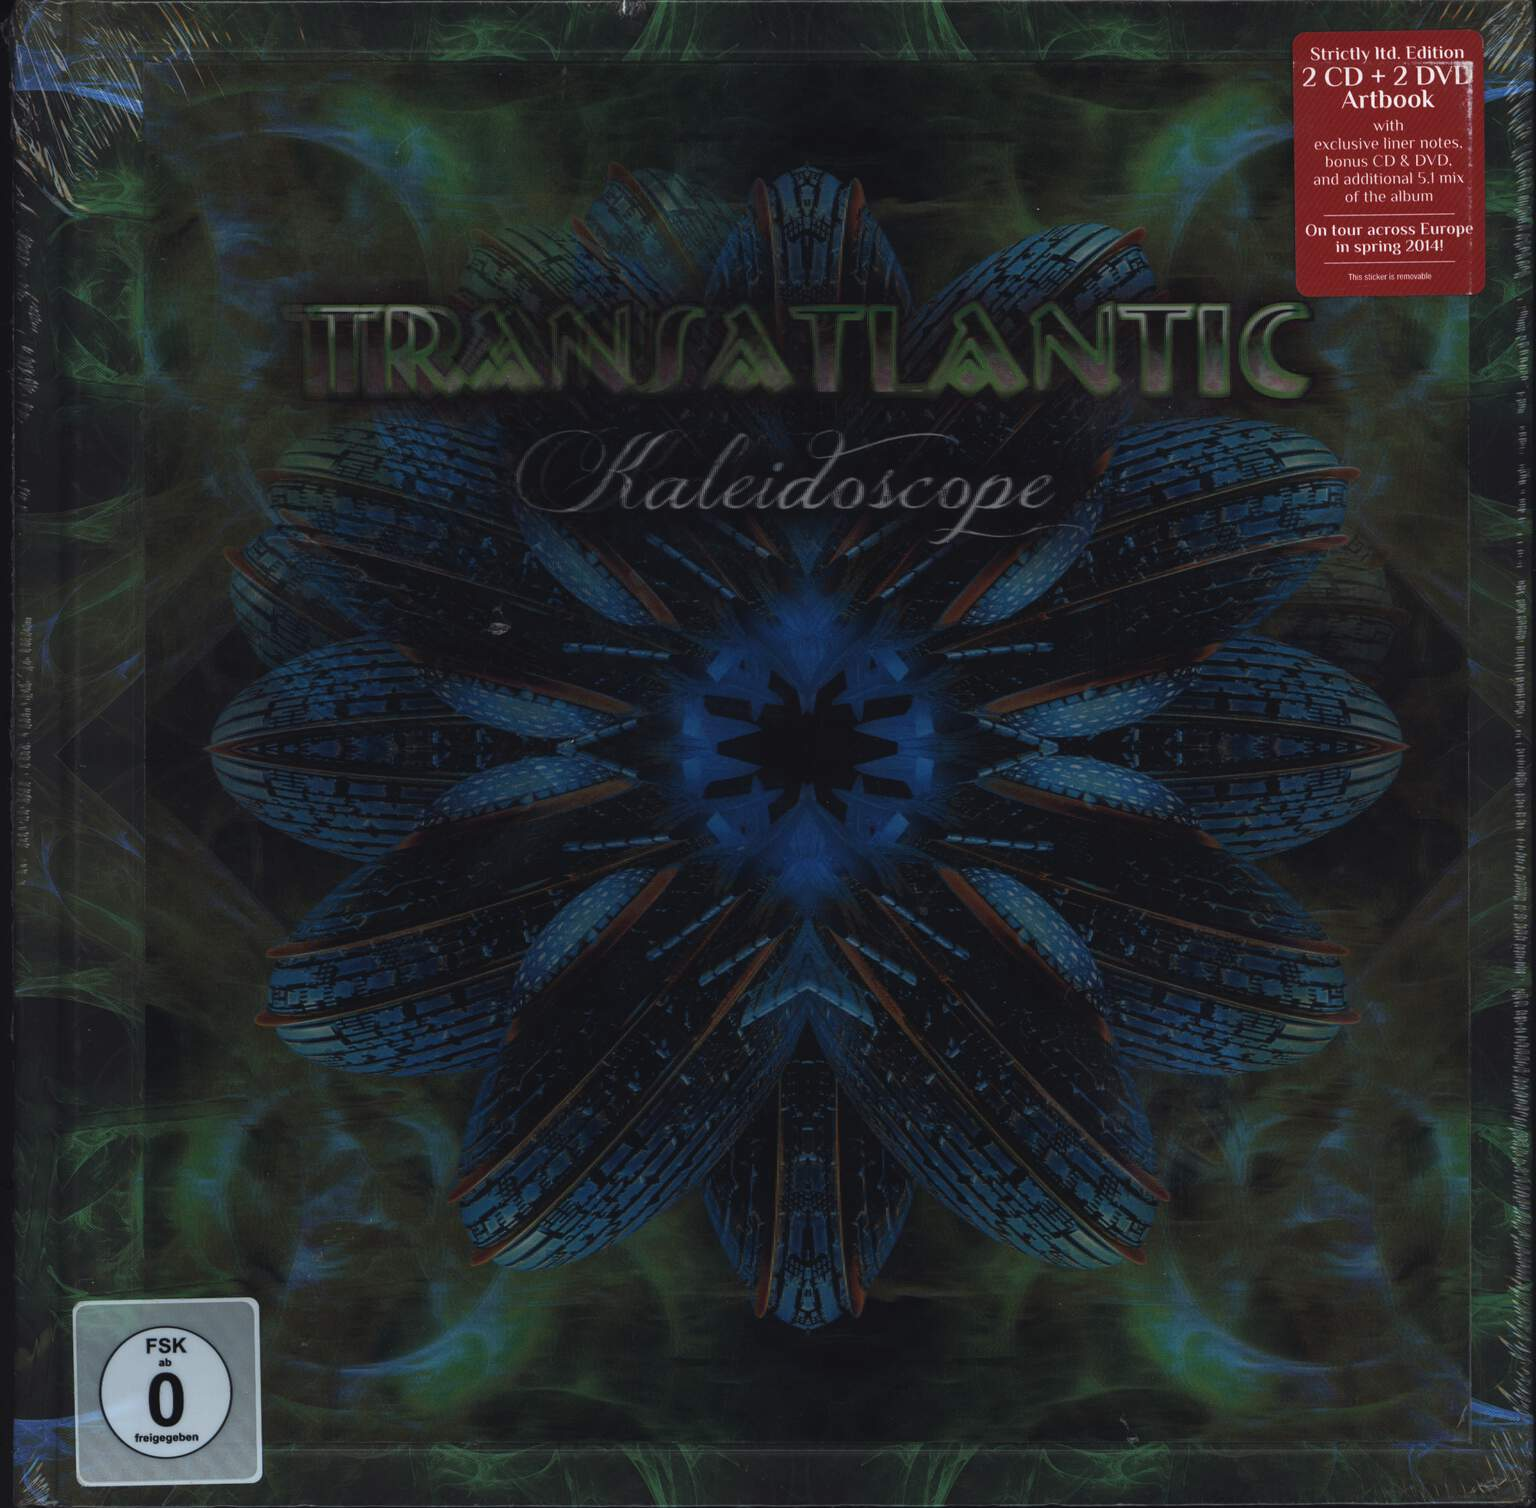 TransAtlantic: Kaleidoscope (Limited Deluxe Artbook), CD